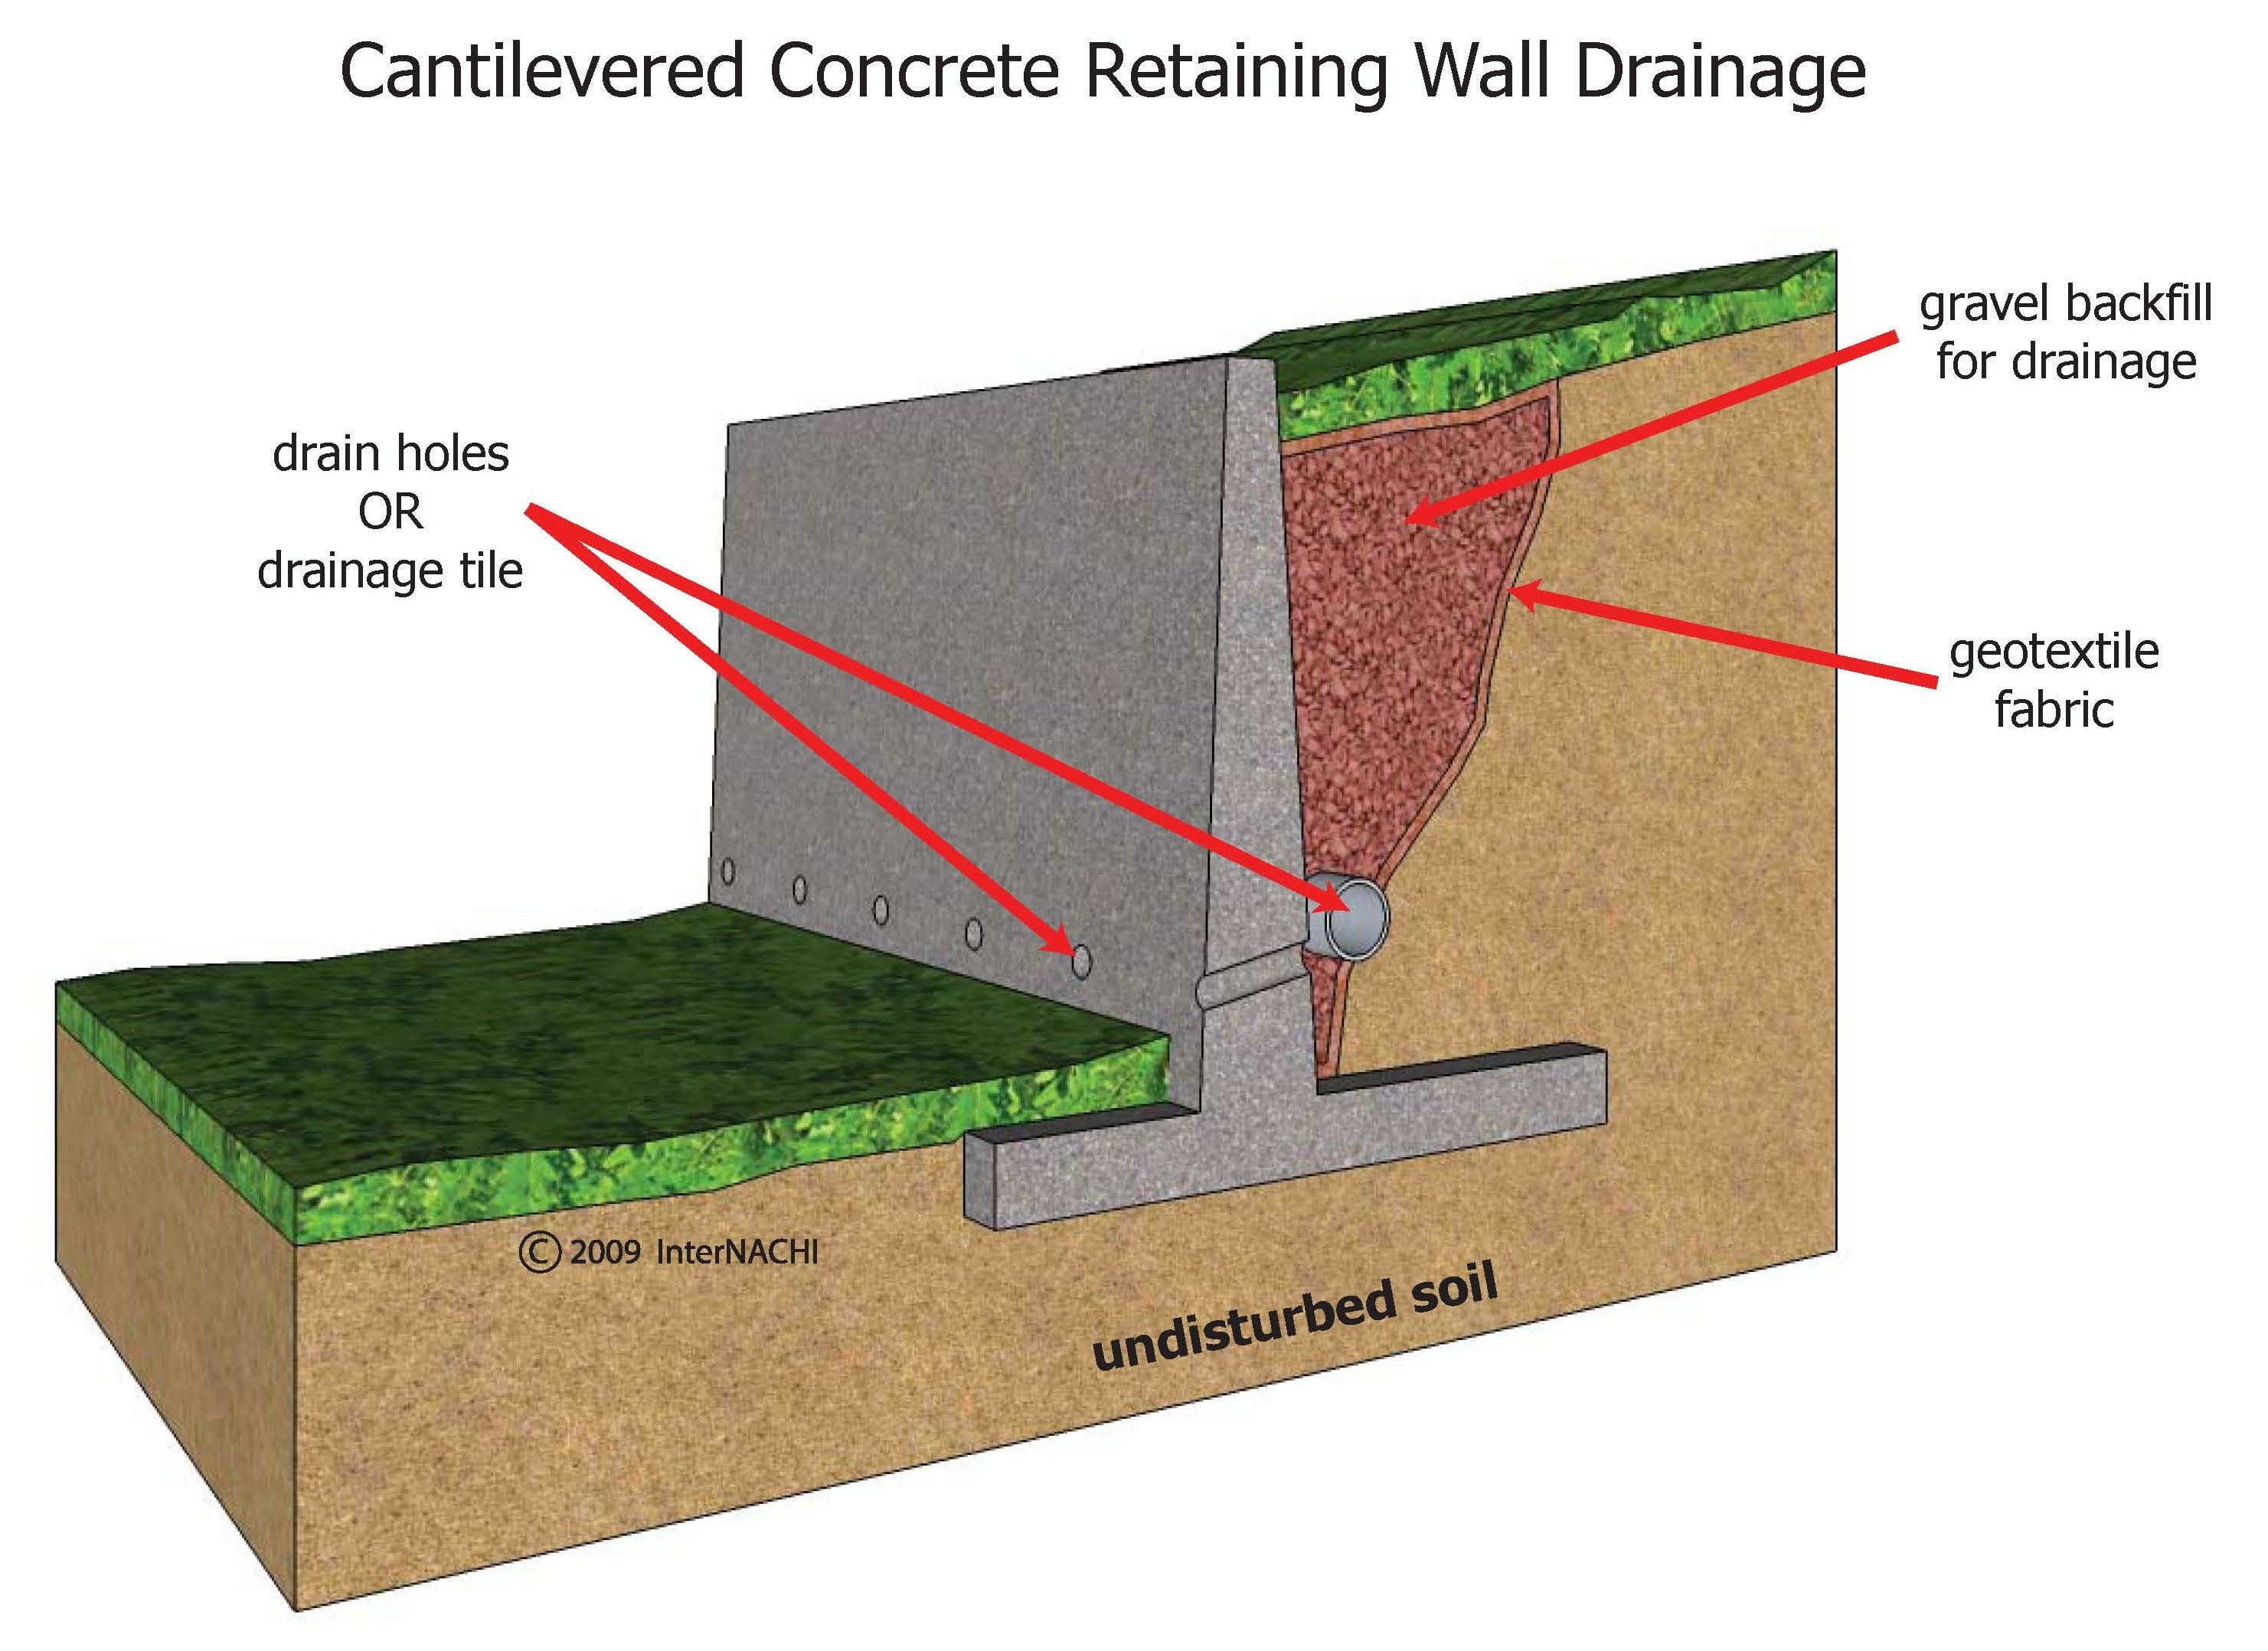 Cantilevered Concrete Retaining Wall Concrete Retaining Walls Types Of Retaining Wall Retaining Wall Drainage